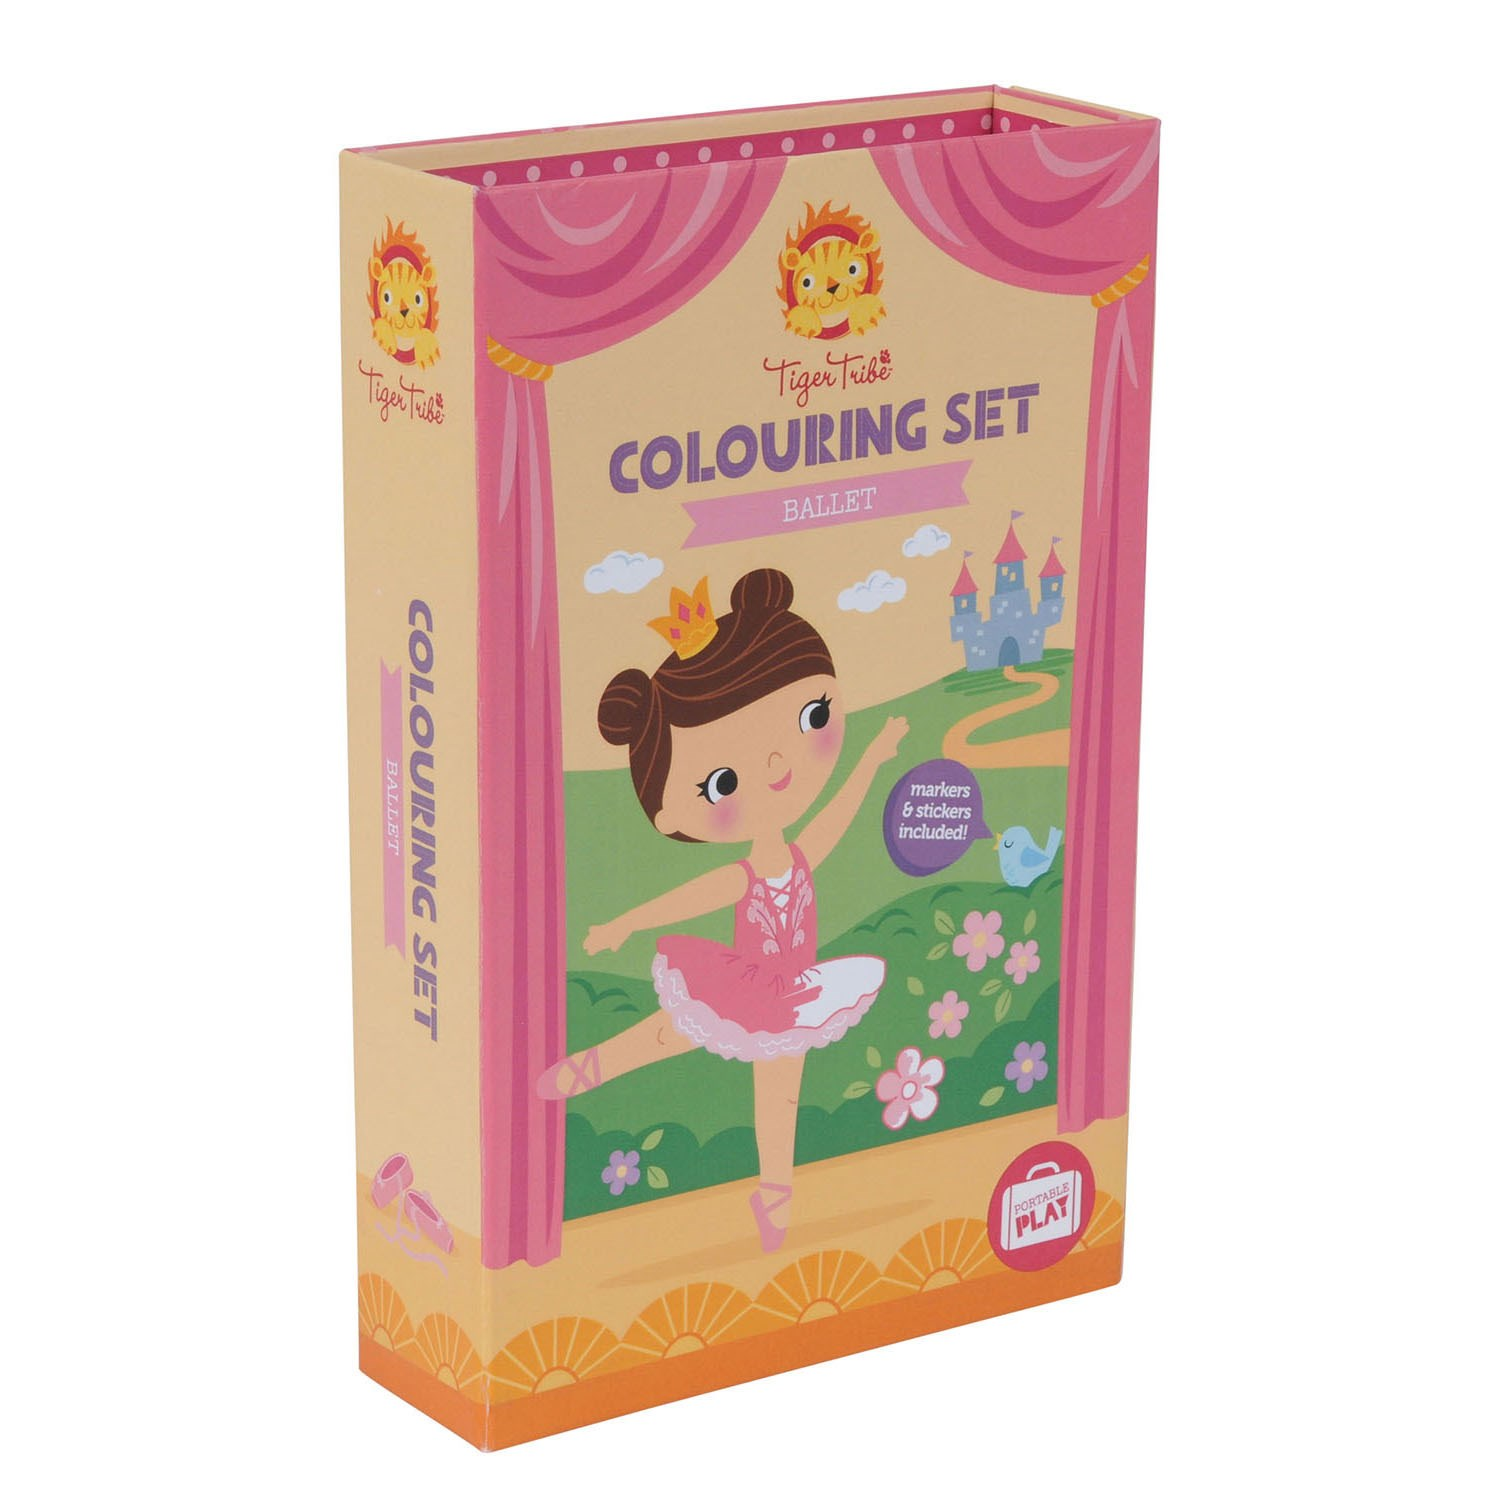 Tiger Tribe - Colouring Set, Ballet